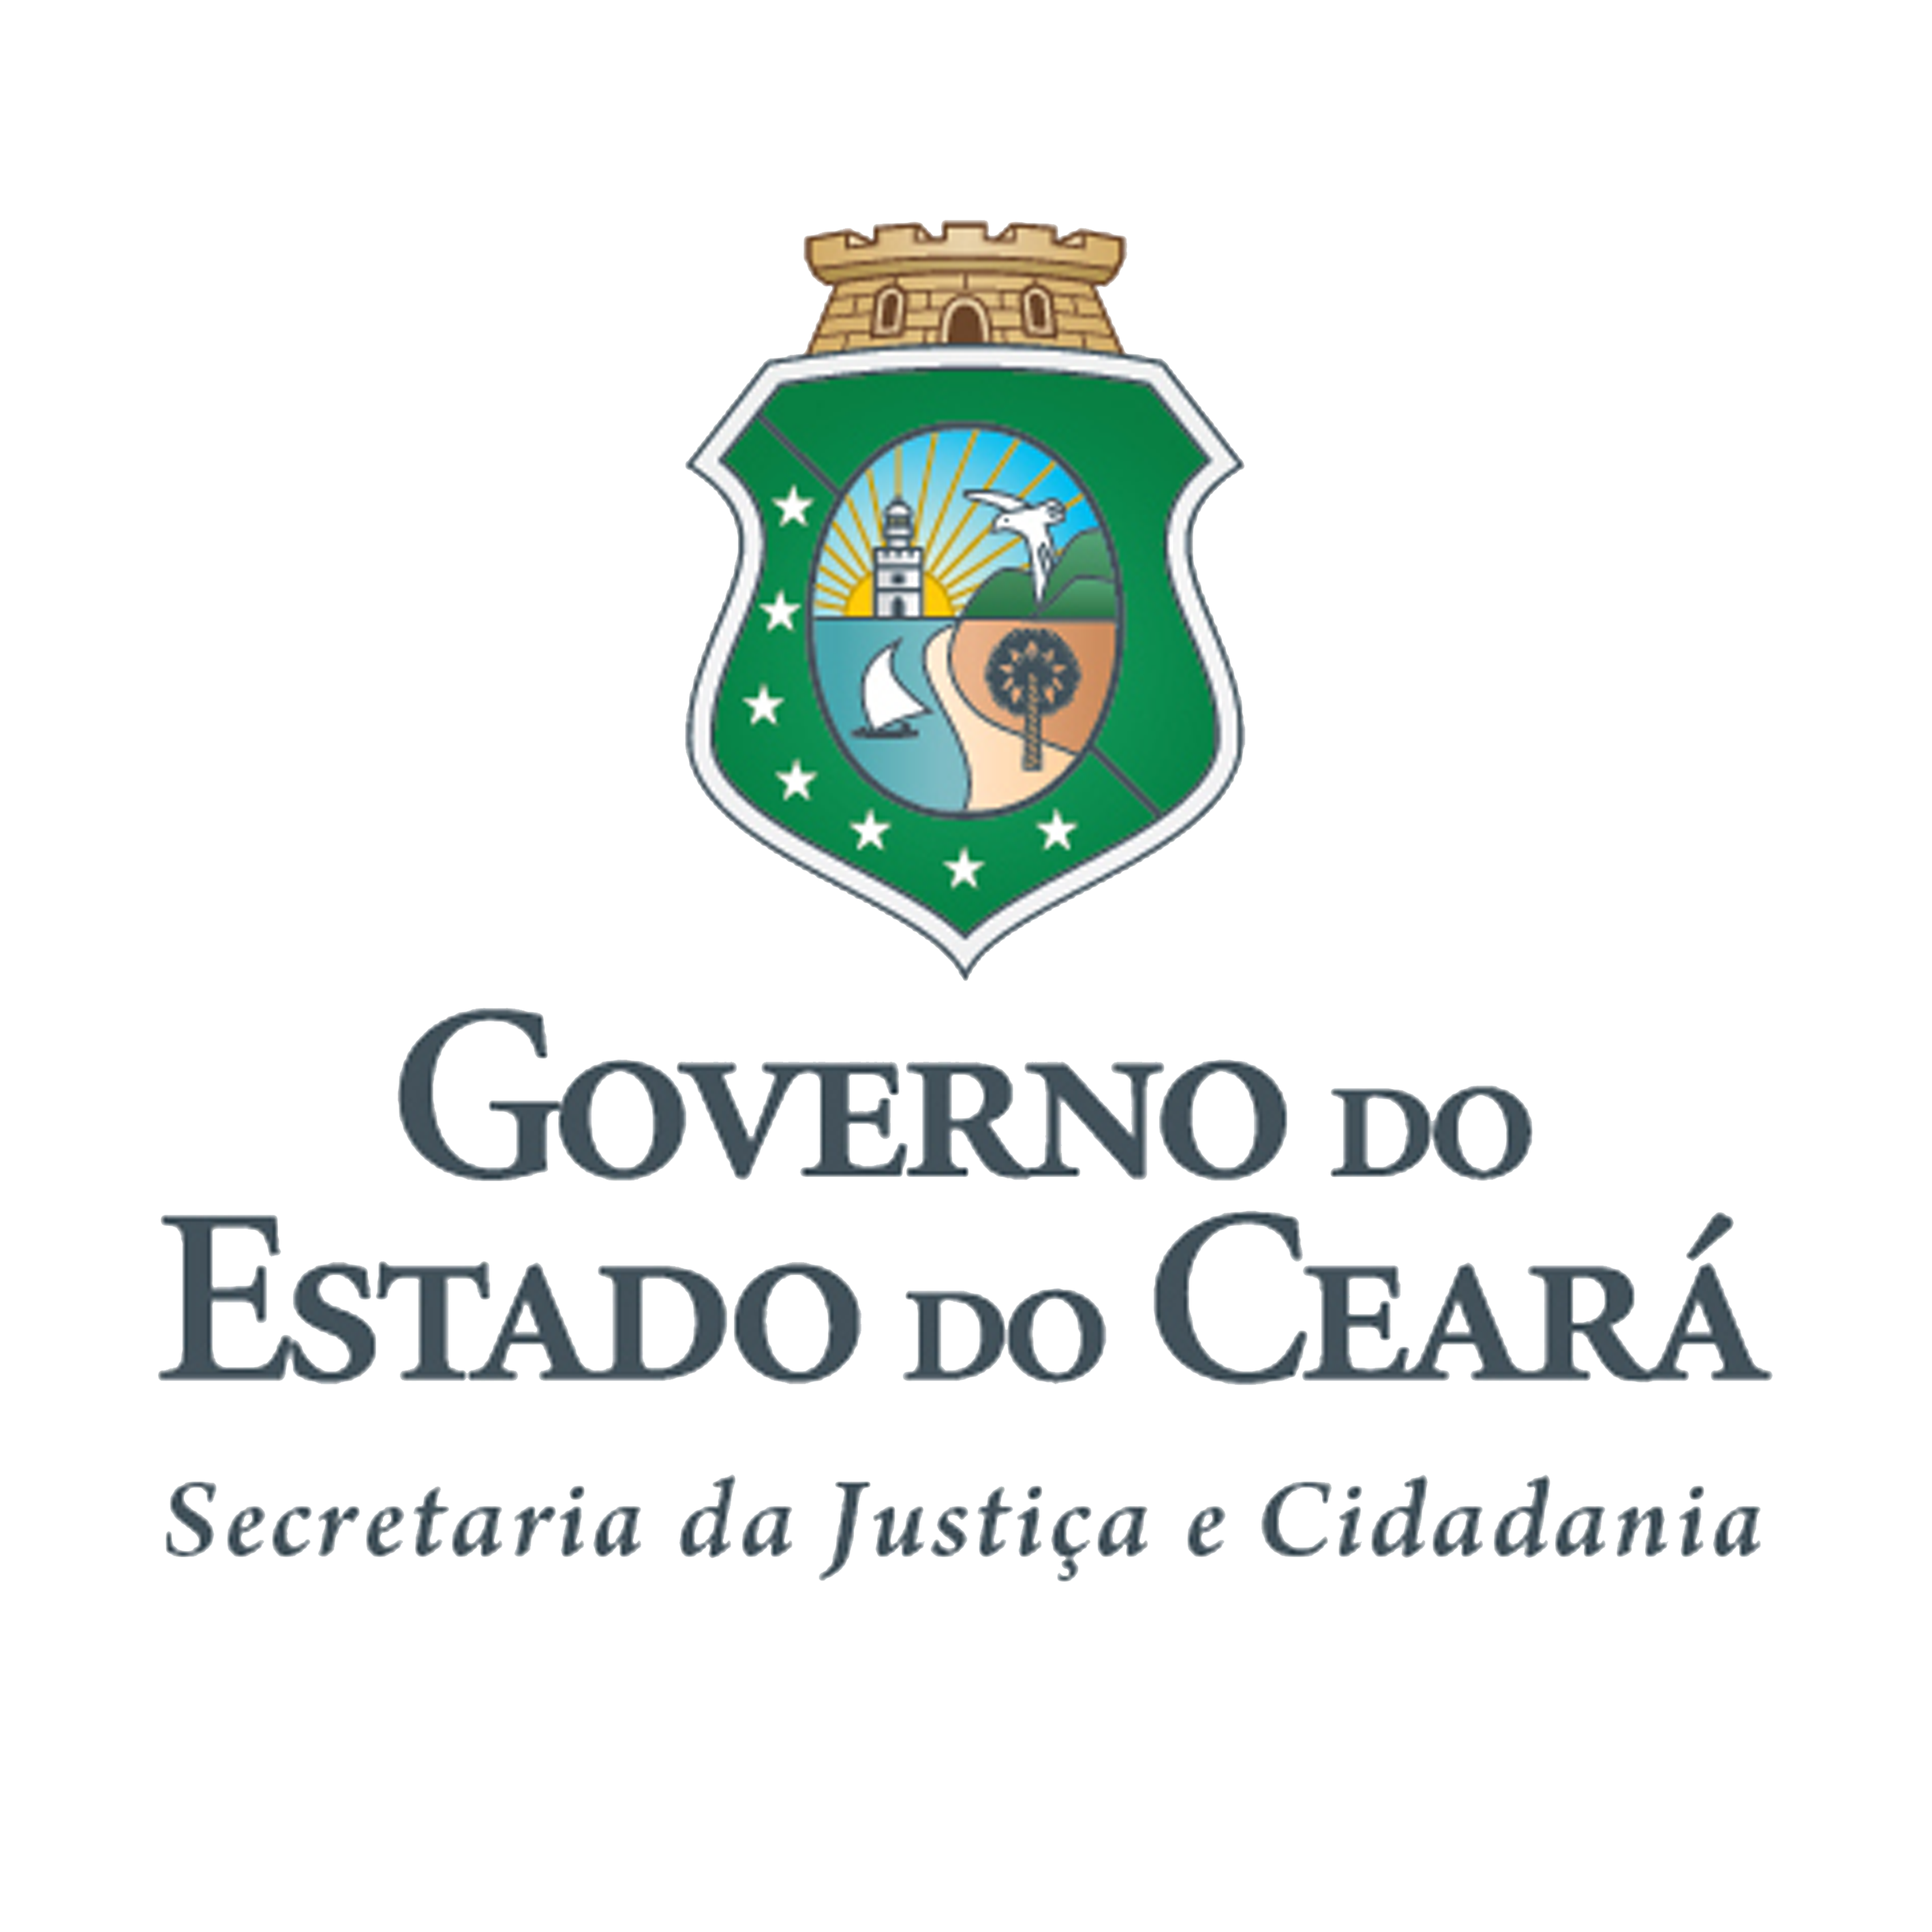 instituto-aco-cearense-logo